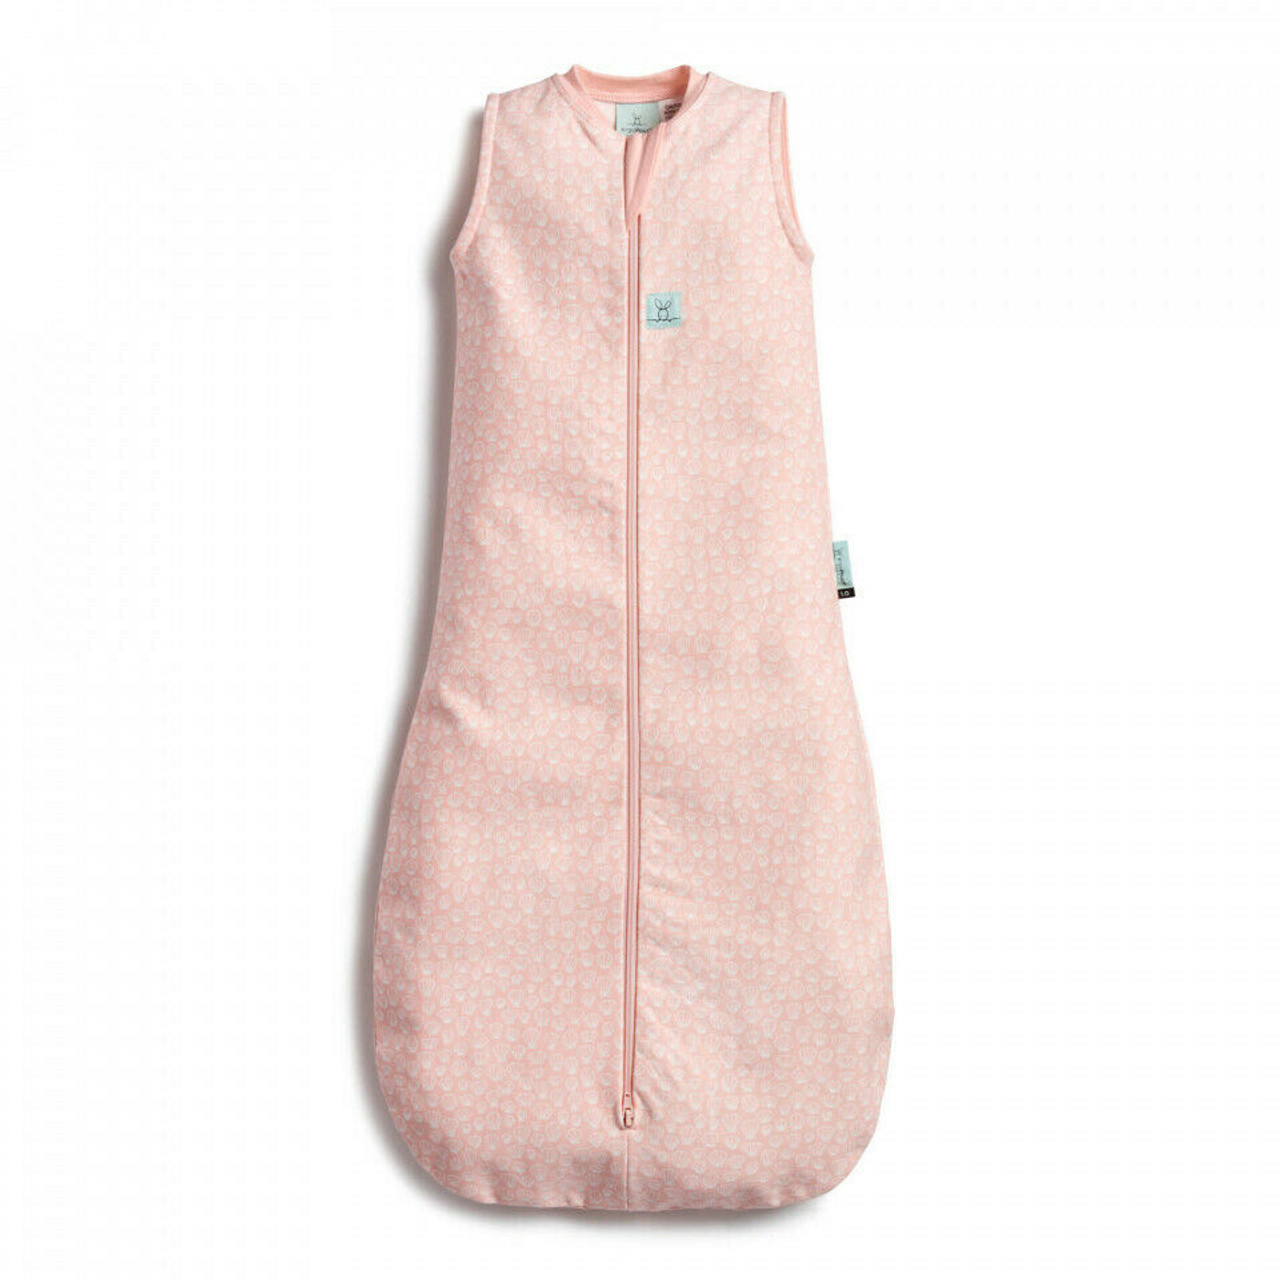 ergoPouch Jersey Sleeping Bag 1.0Tog 8-24 Months SHELLS at Baby Barn Discounts